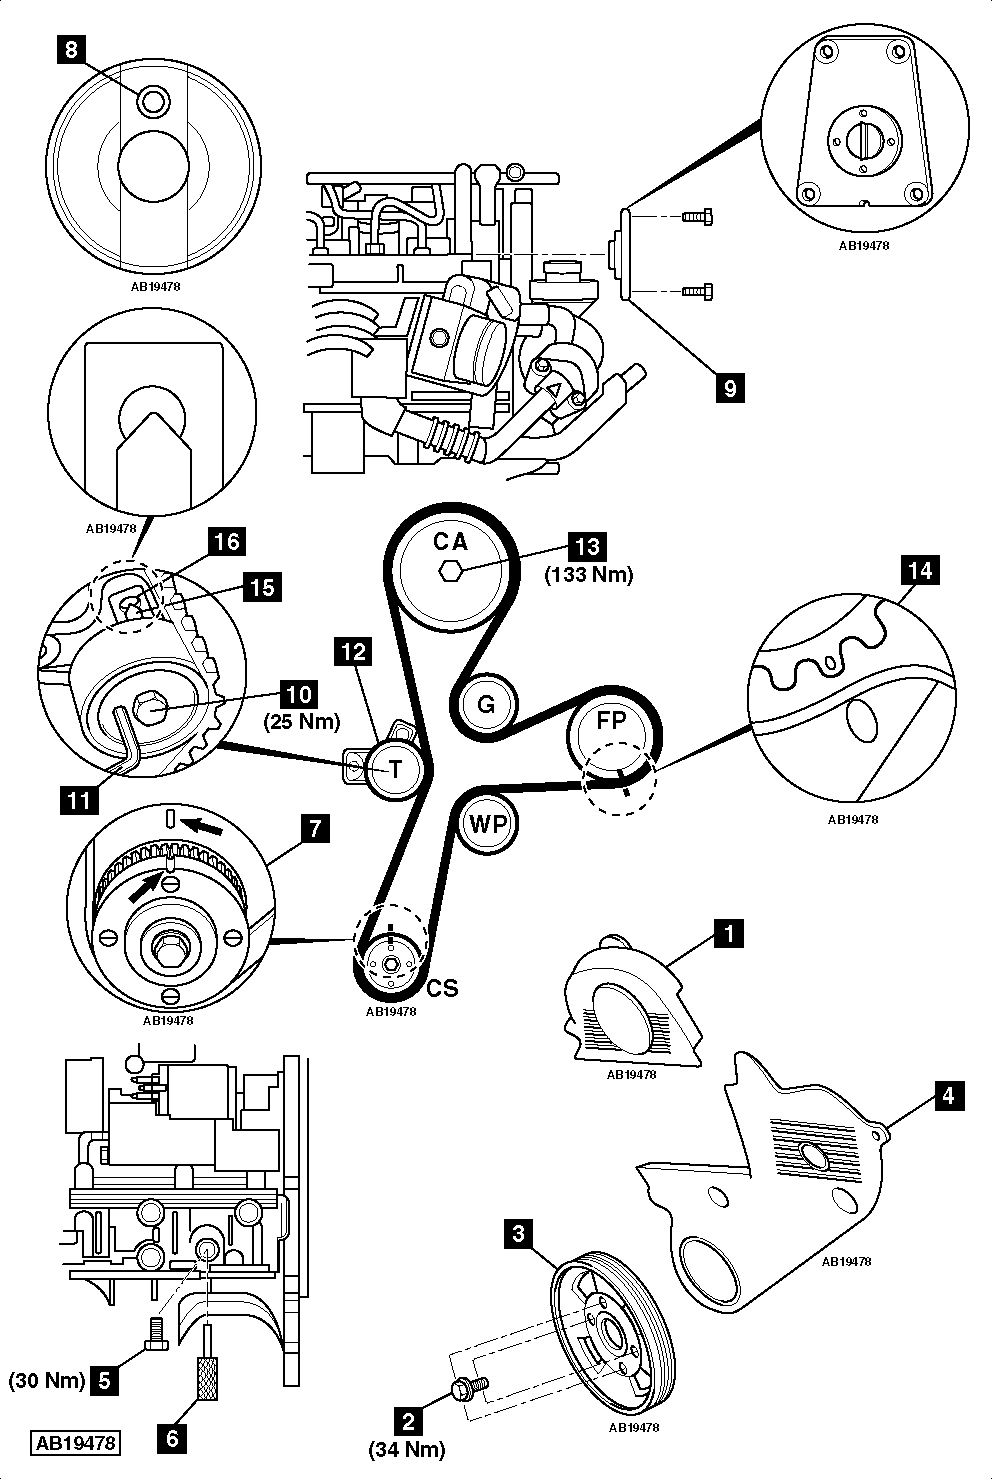 Chevrolet sonic parts diagrams 2011 chevy cruze engine diagram at ww justdeskto allpapers